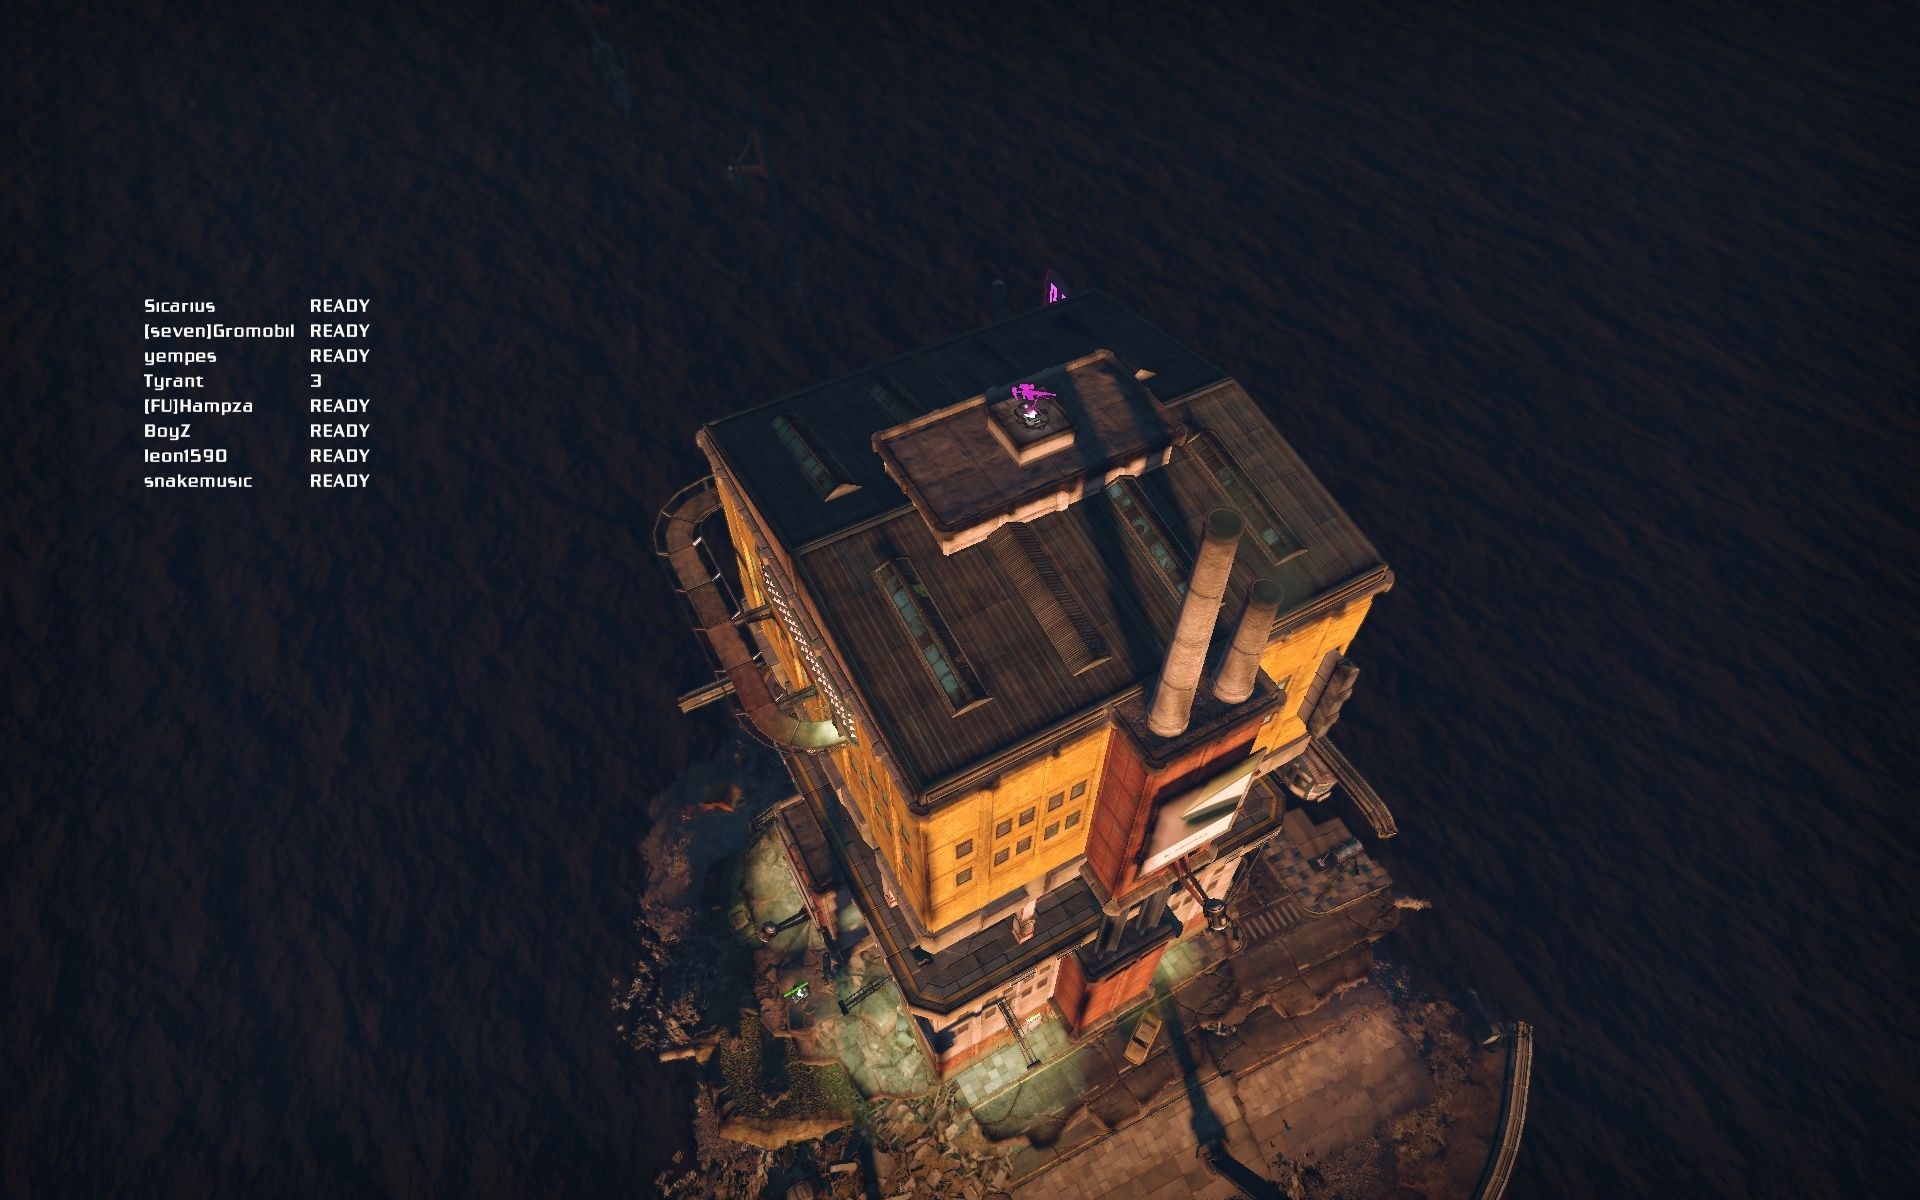 Bionic Commando Windows A multiplayer-match is about to begin on this small island.